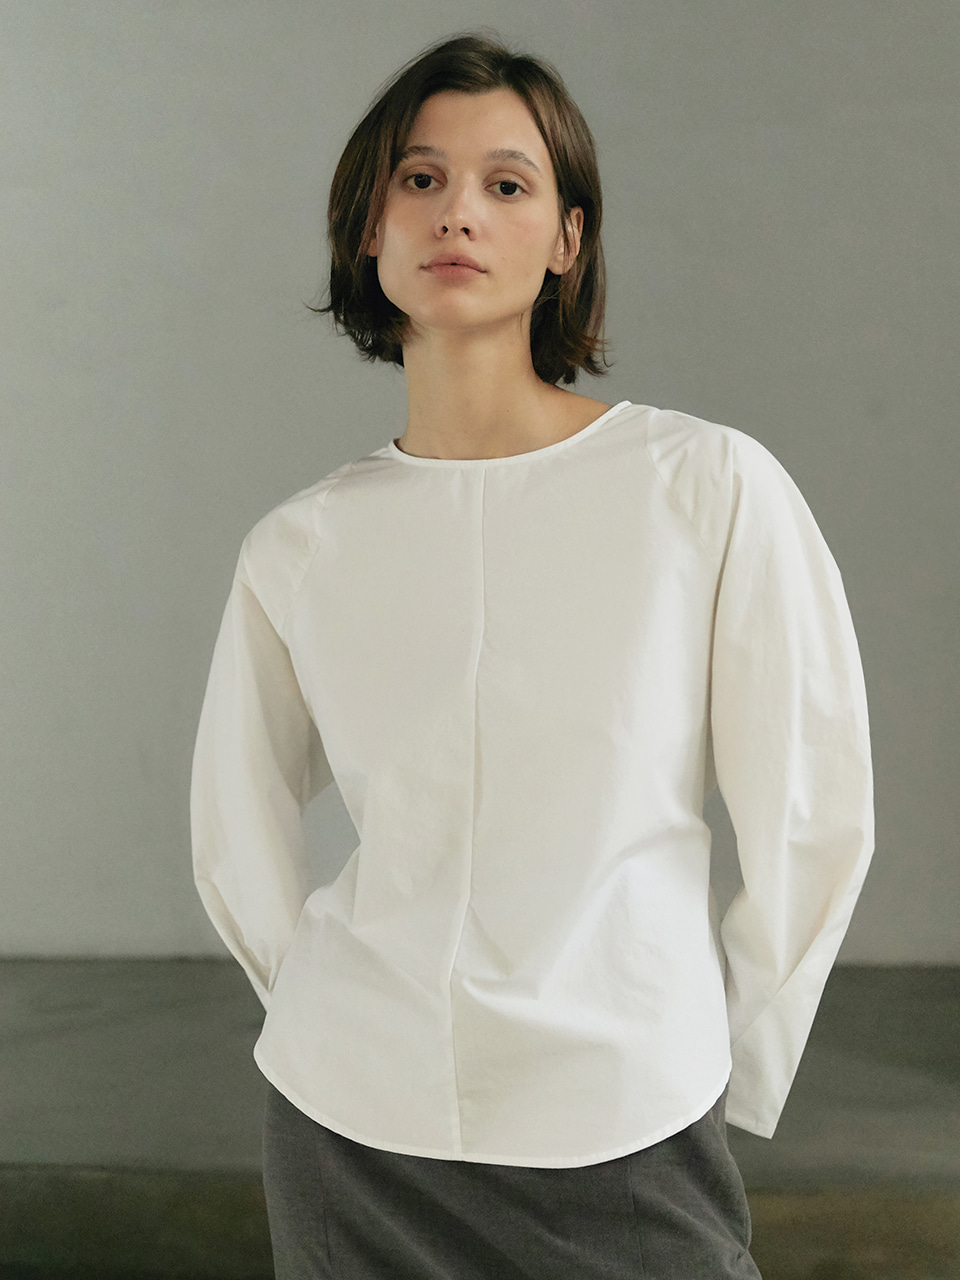 Round volume blouse - White